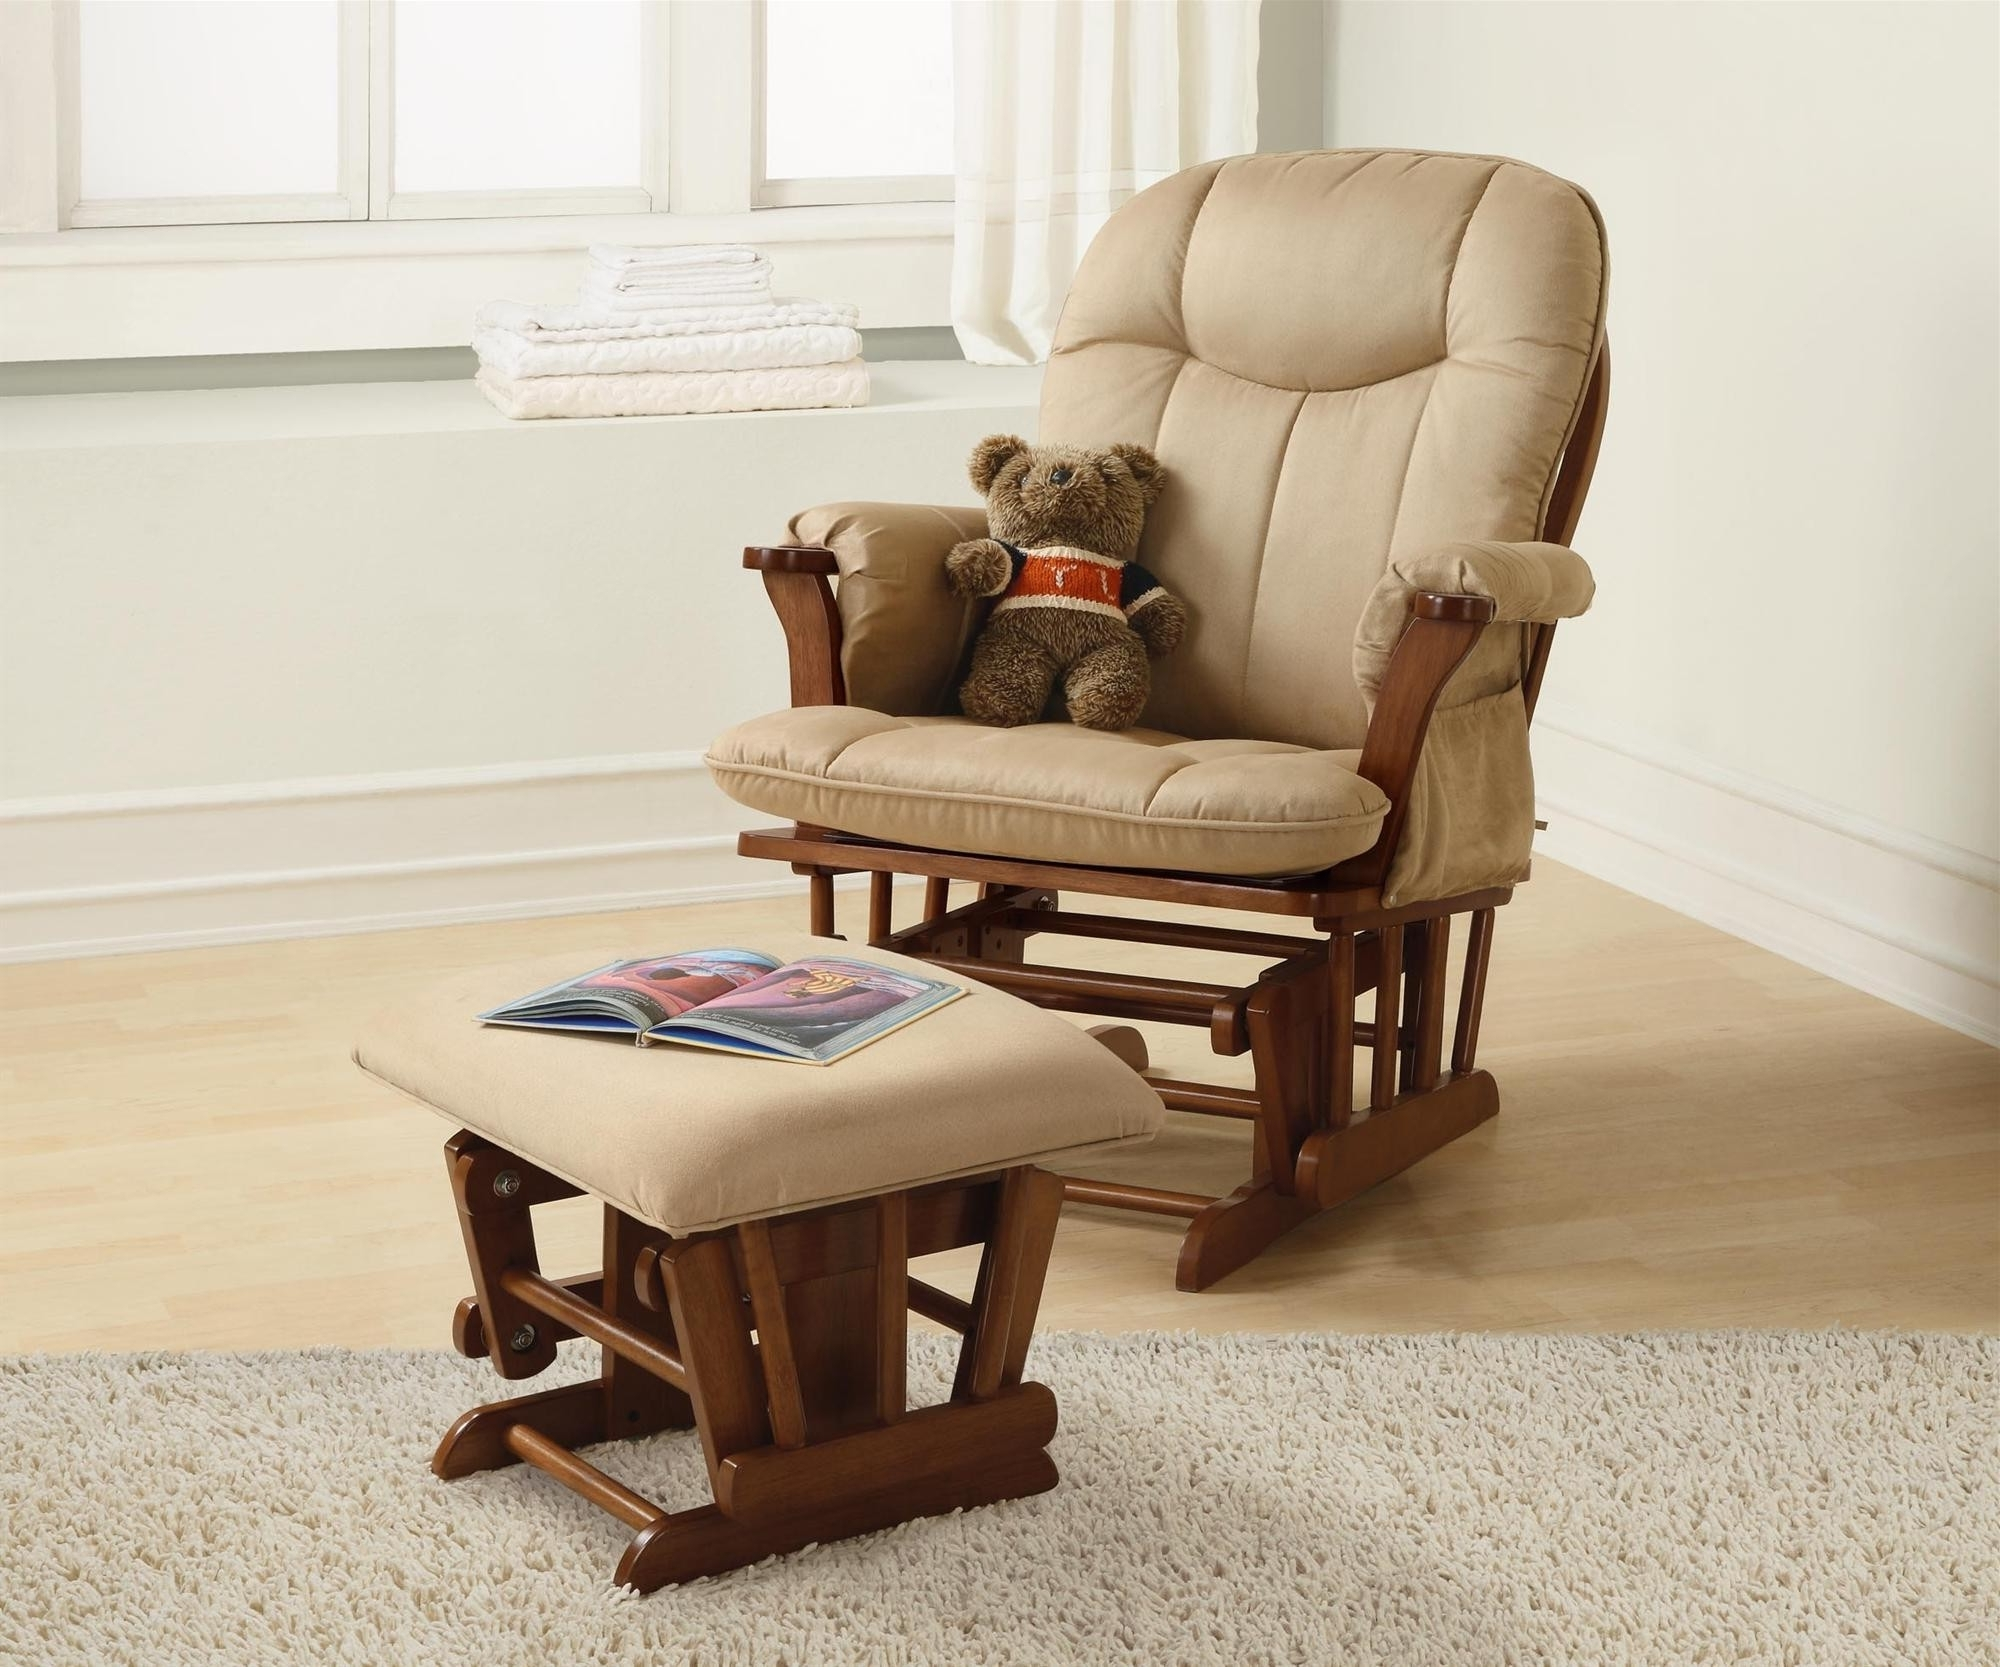 Rocking Chairs For Nursing Pertaining To Most Up To Date Ottomans : Nursery Rocking Chair Walmart New Ottomans Glider Rocker (View 11 of 15)